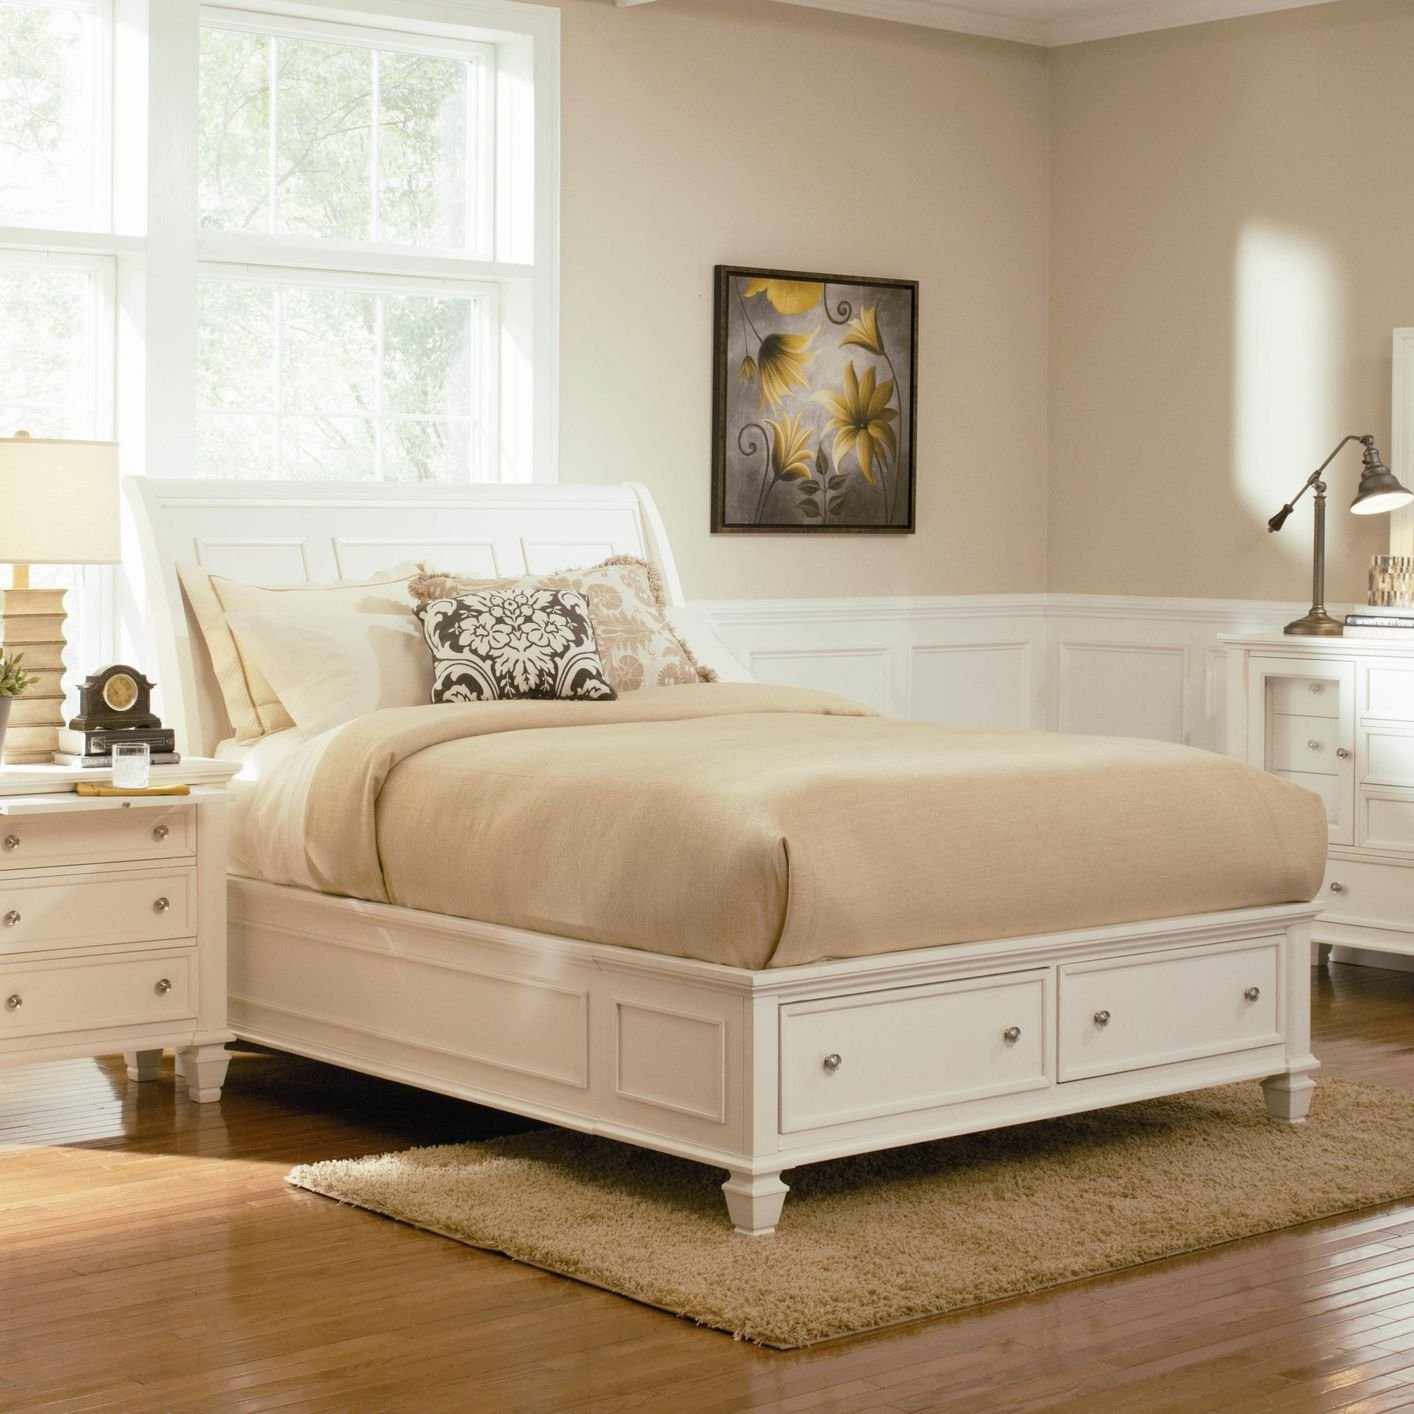 Coaster 201309Q White Queen Size Wood Bed  StealASofa Furniture Outlet Los Angeles CA